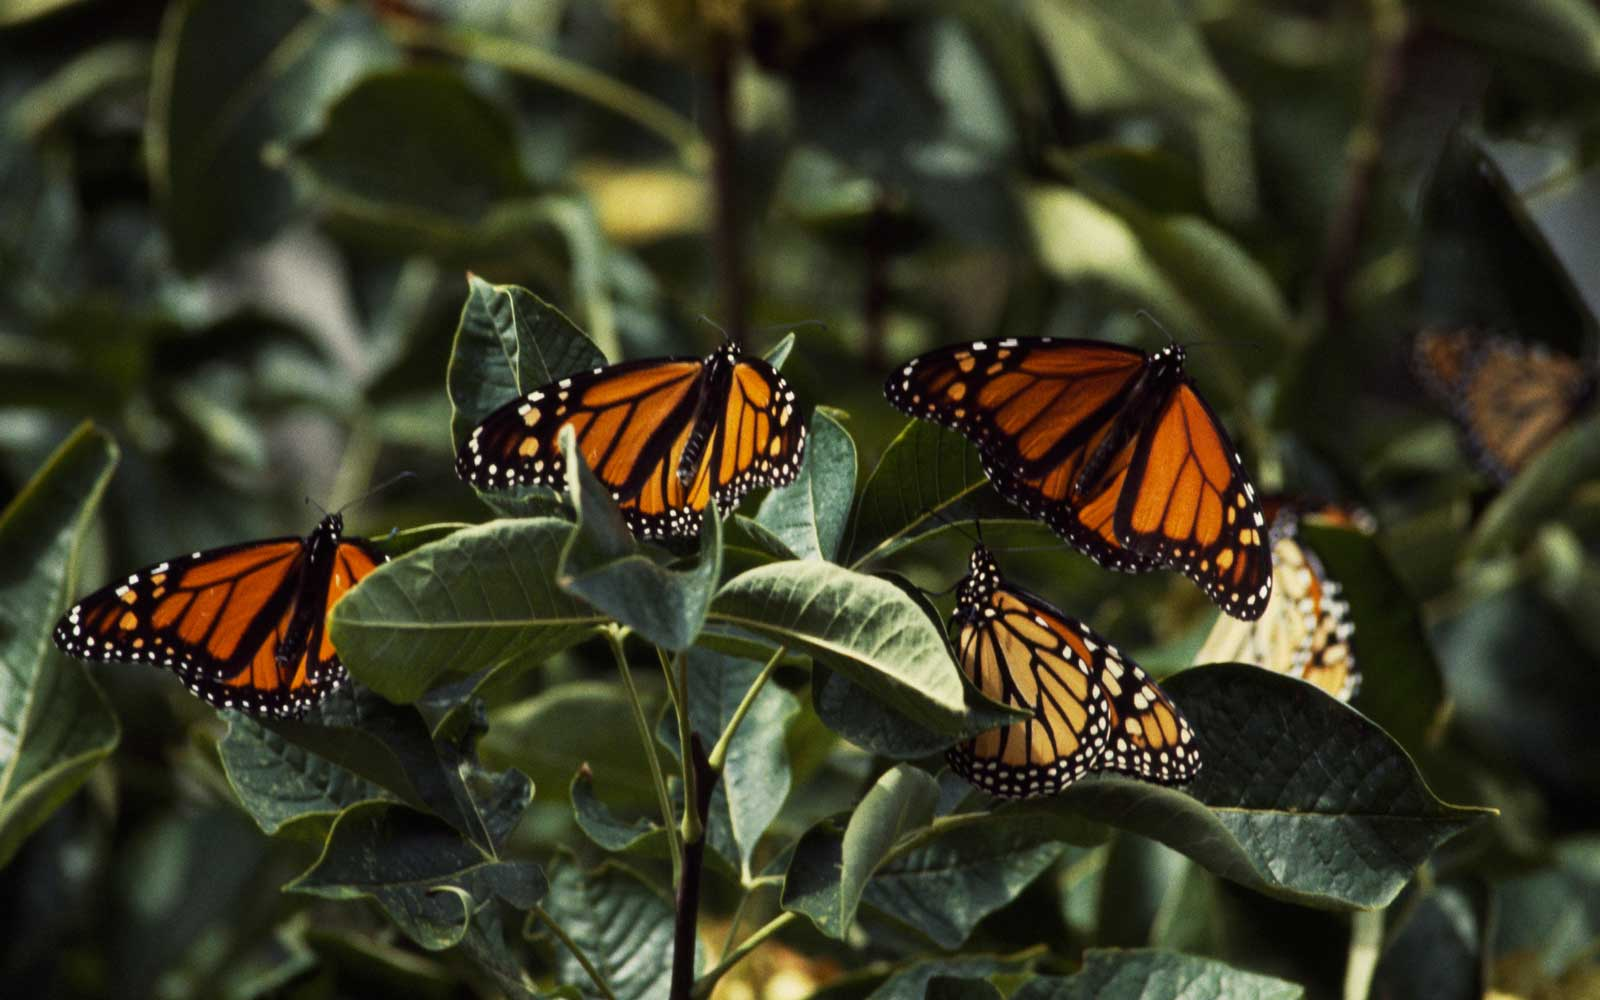 Monarch butterfly (Danaus plexippus), Nymphalidae, Point Pelee National Park, Canada